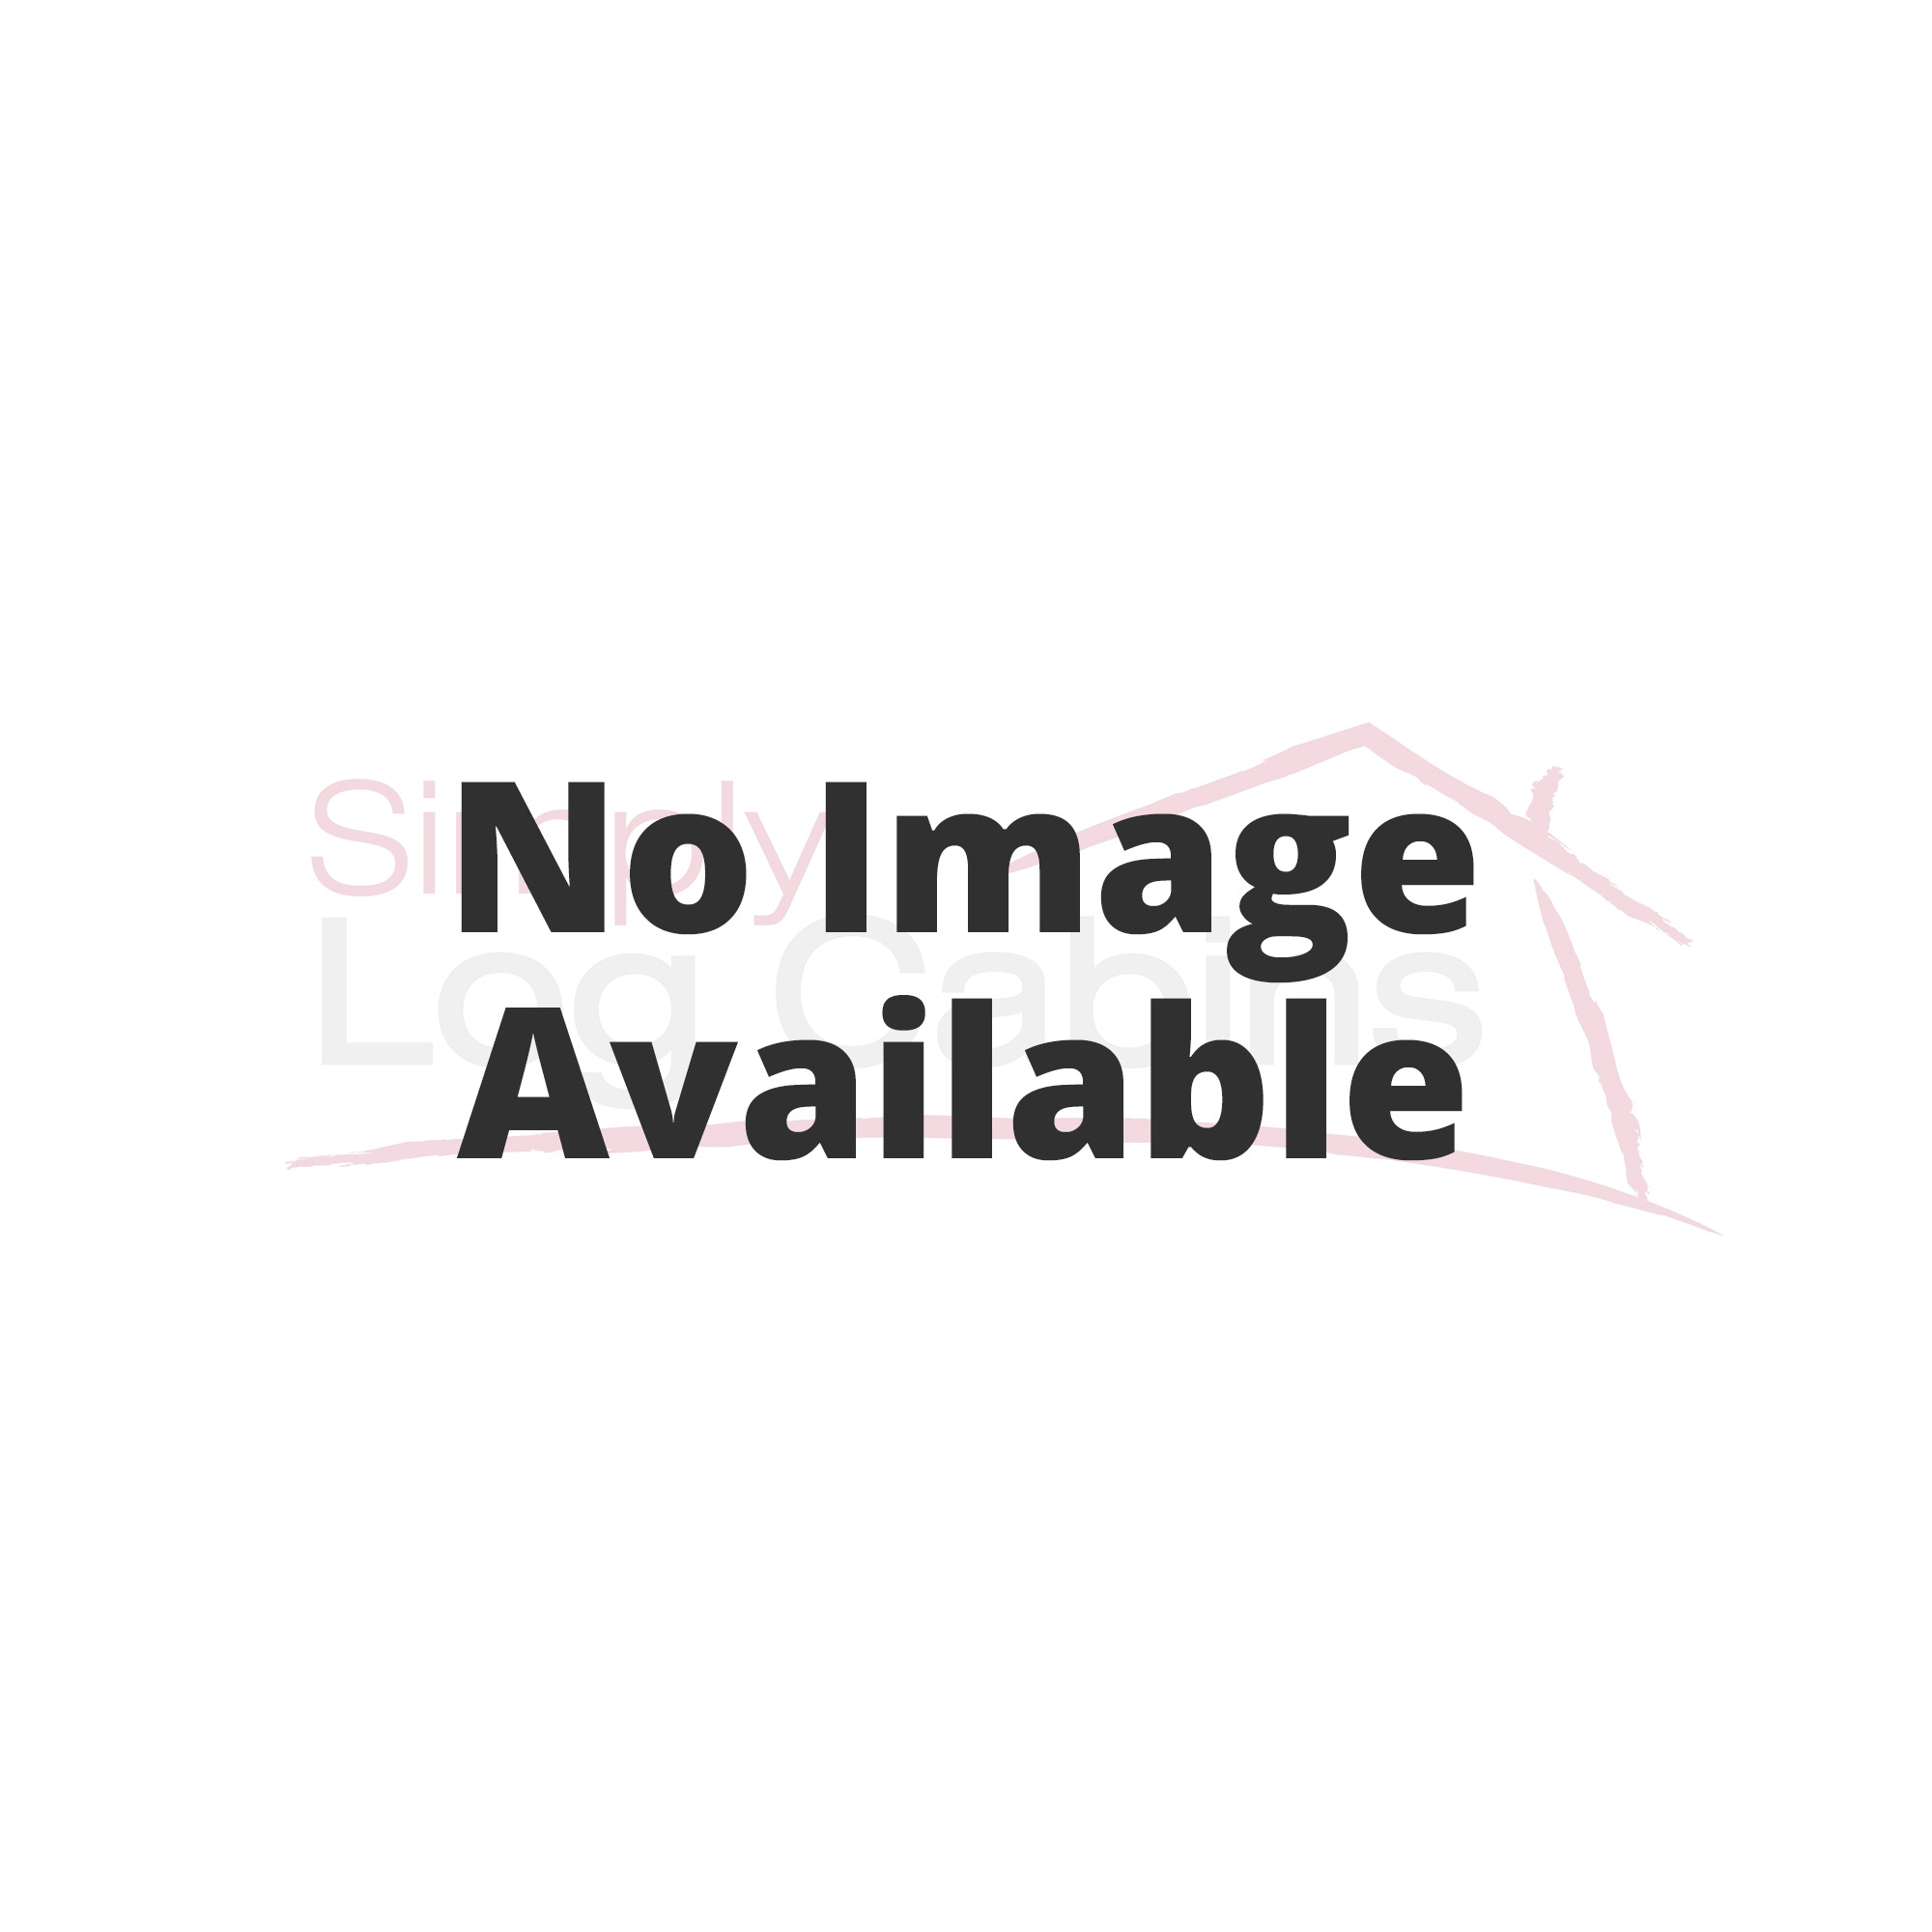 Jagram Leto Pergola with Canvas Cover Option